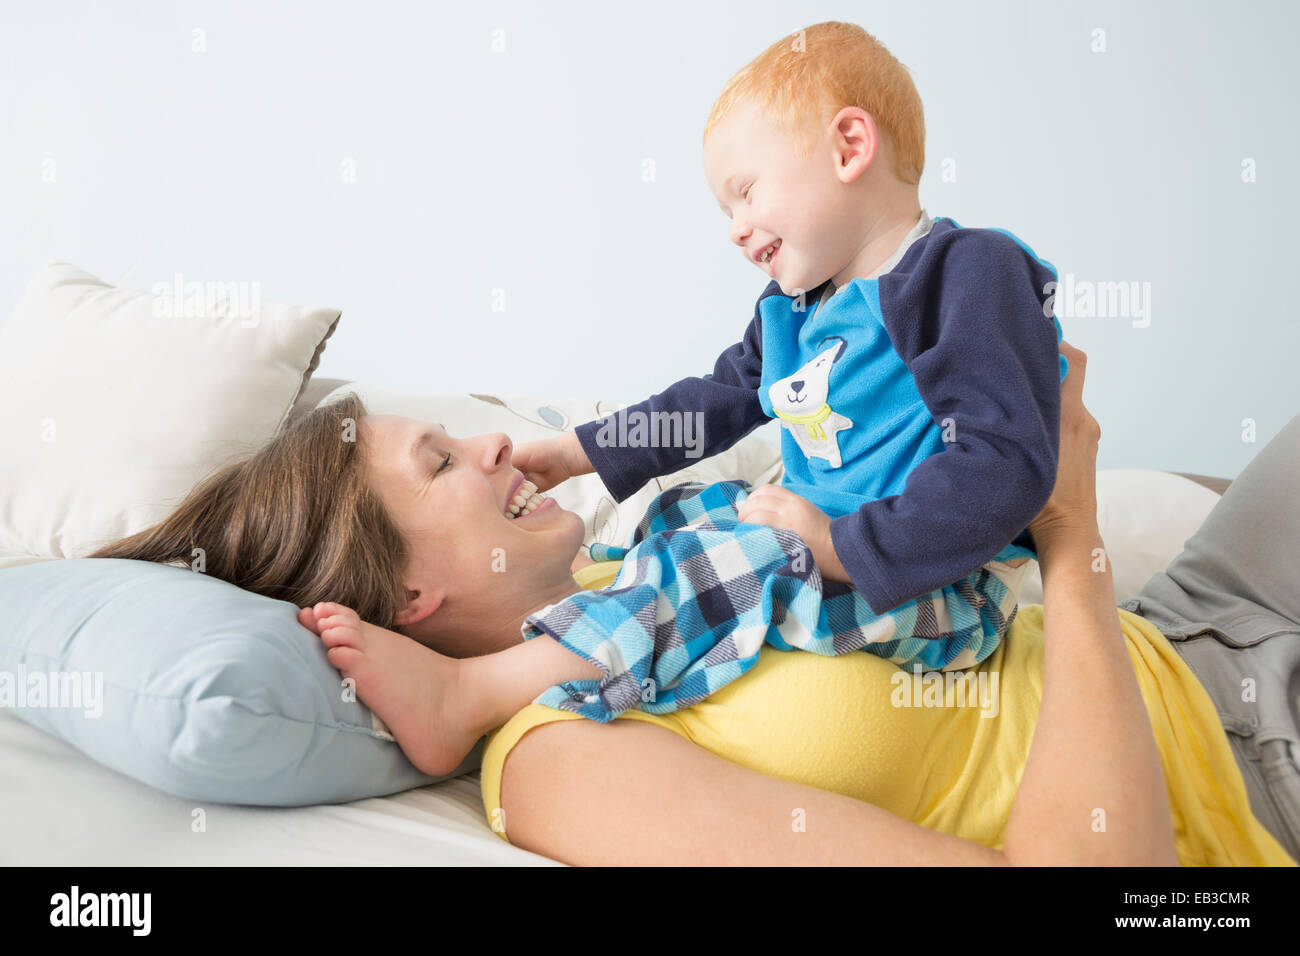 Caucasian mother and son playing on bed Stock Photo